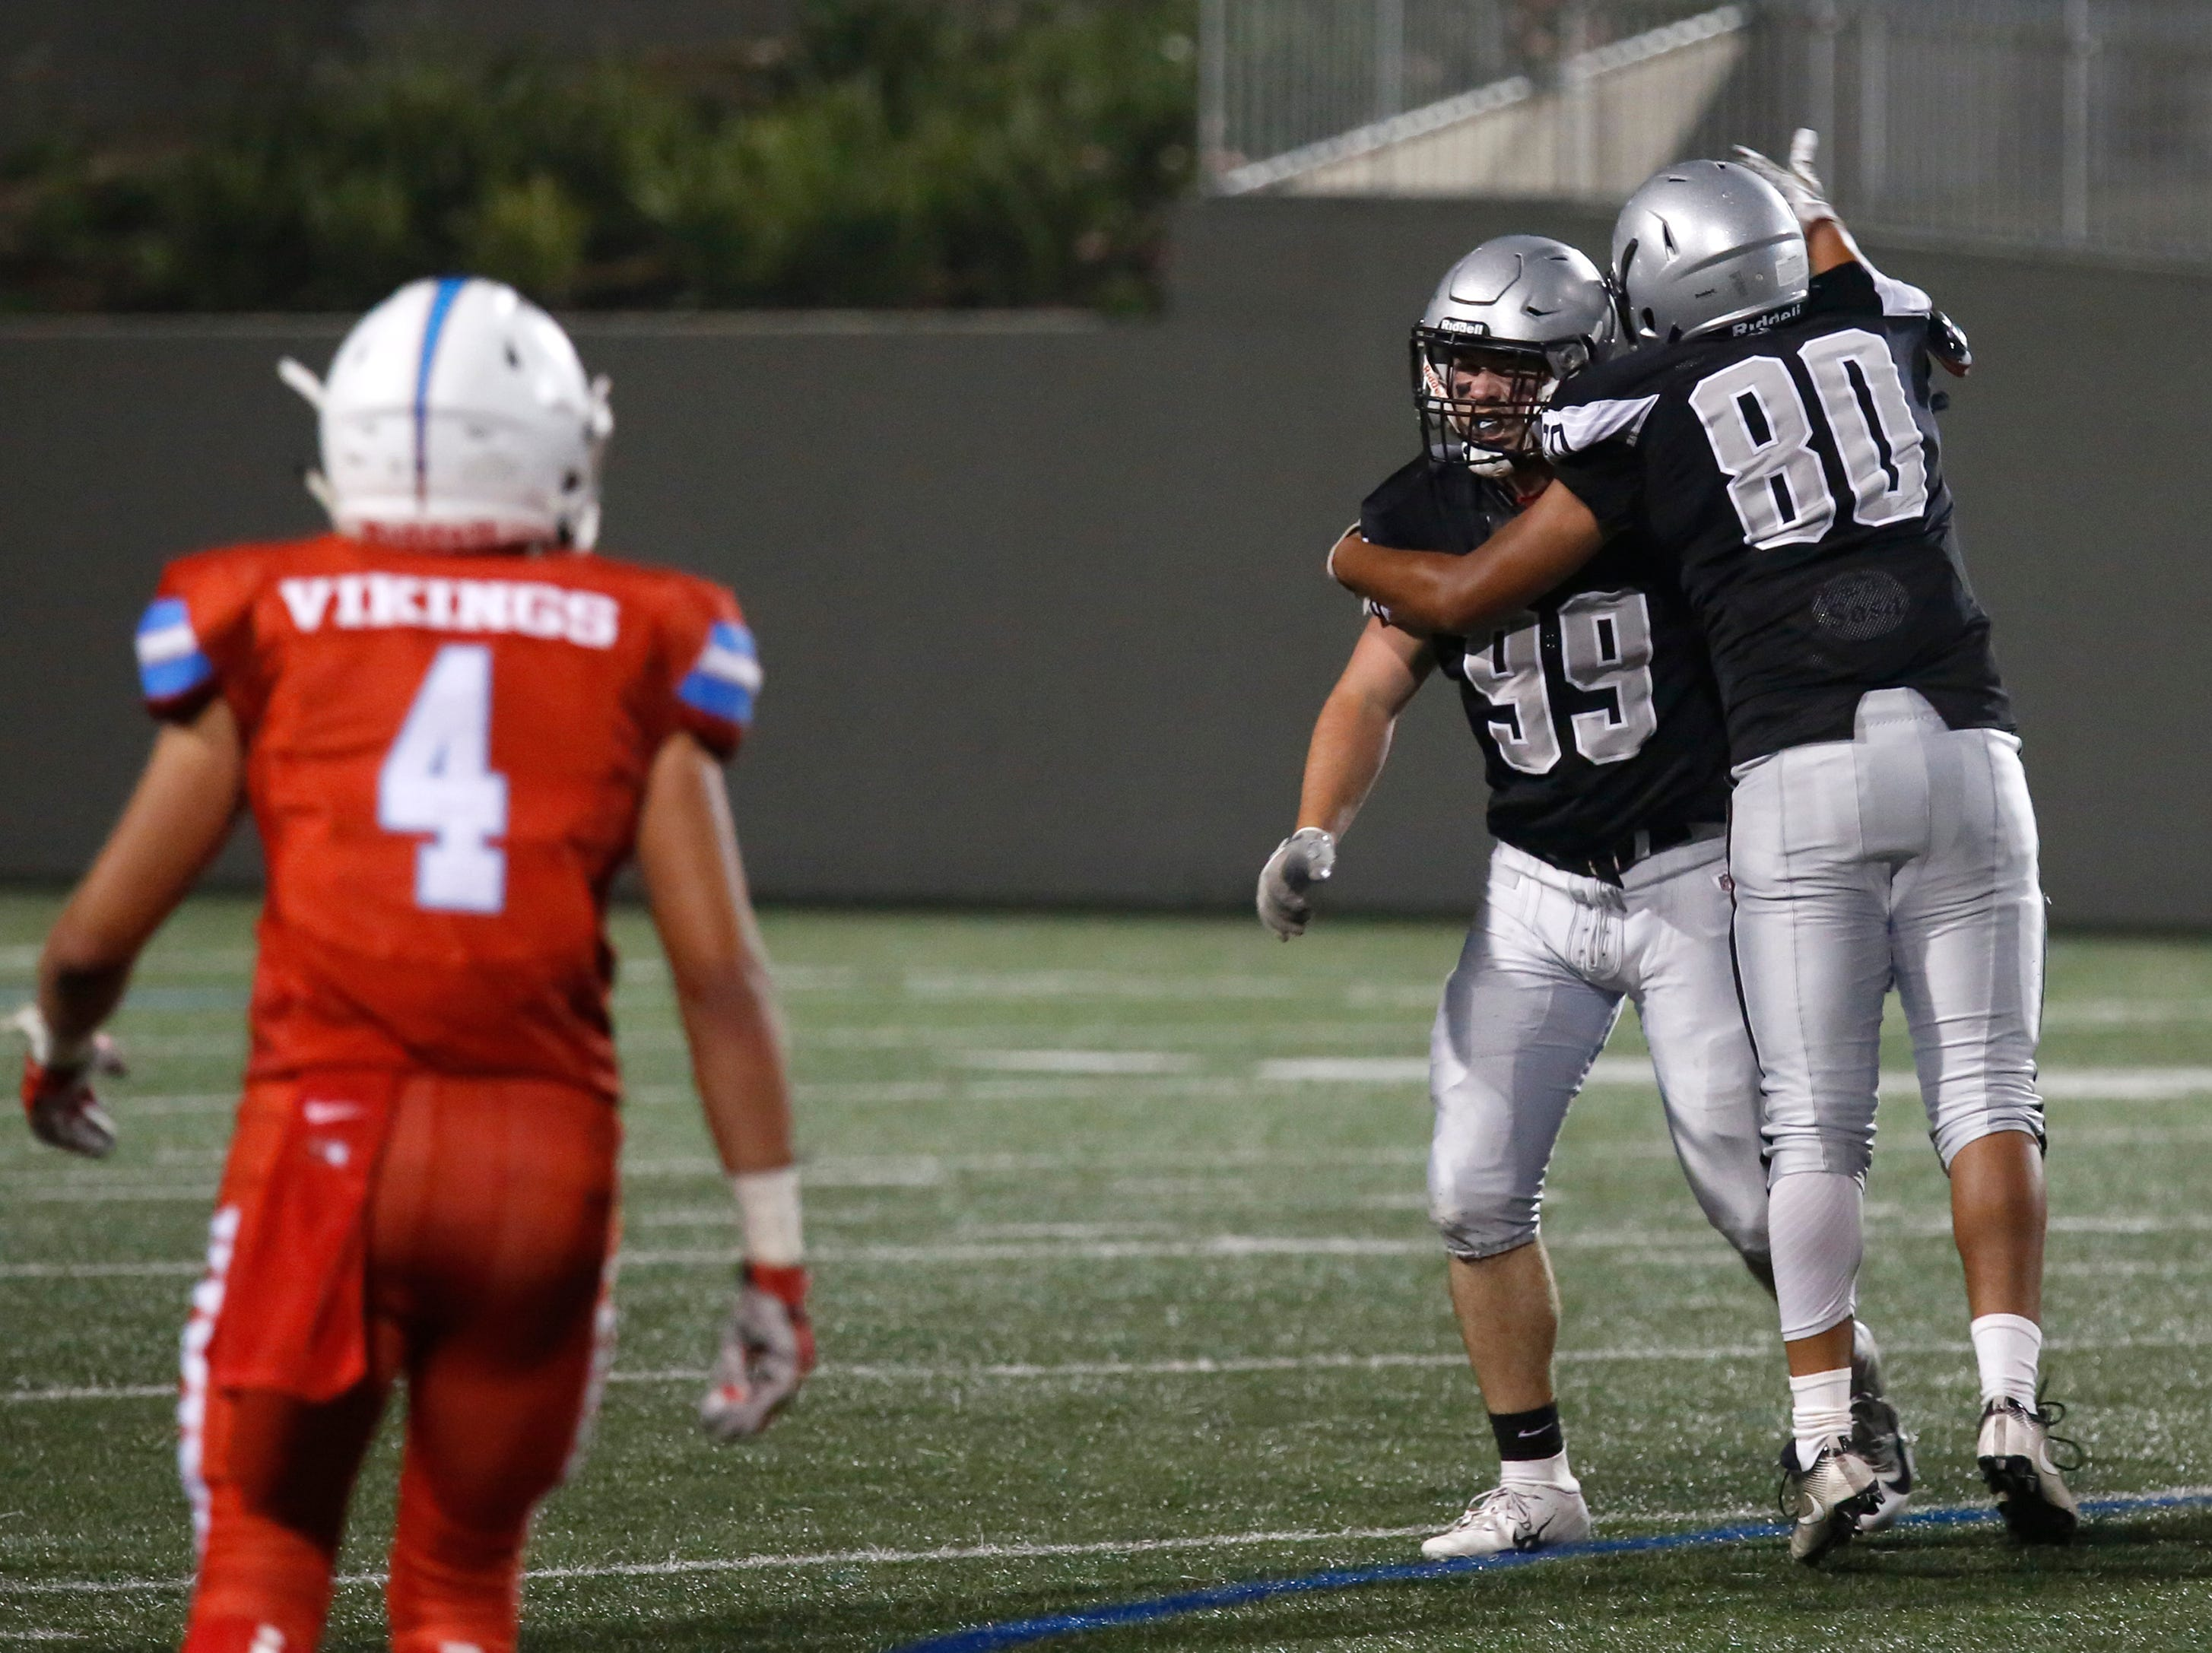 North Monterey County's Konan VanLear, left, is greeted by teammate Felix Perez reacts after his sacking of North Salinas's quarterback during football at Rabobank Stadium in Salinas on Thursday August 23, 2018.